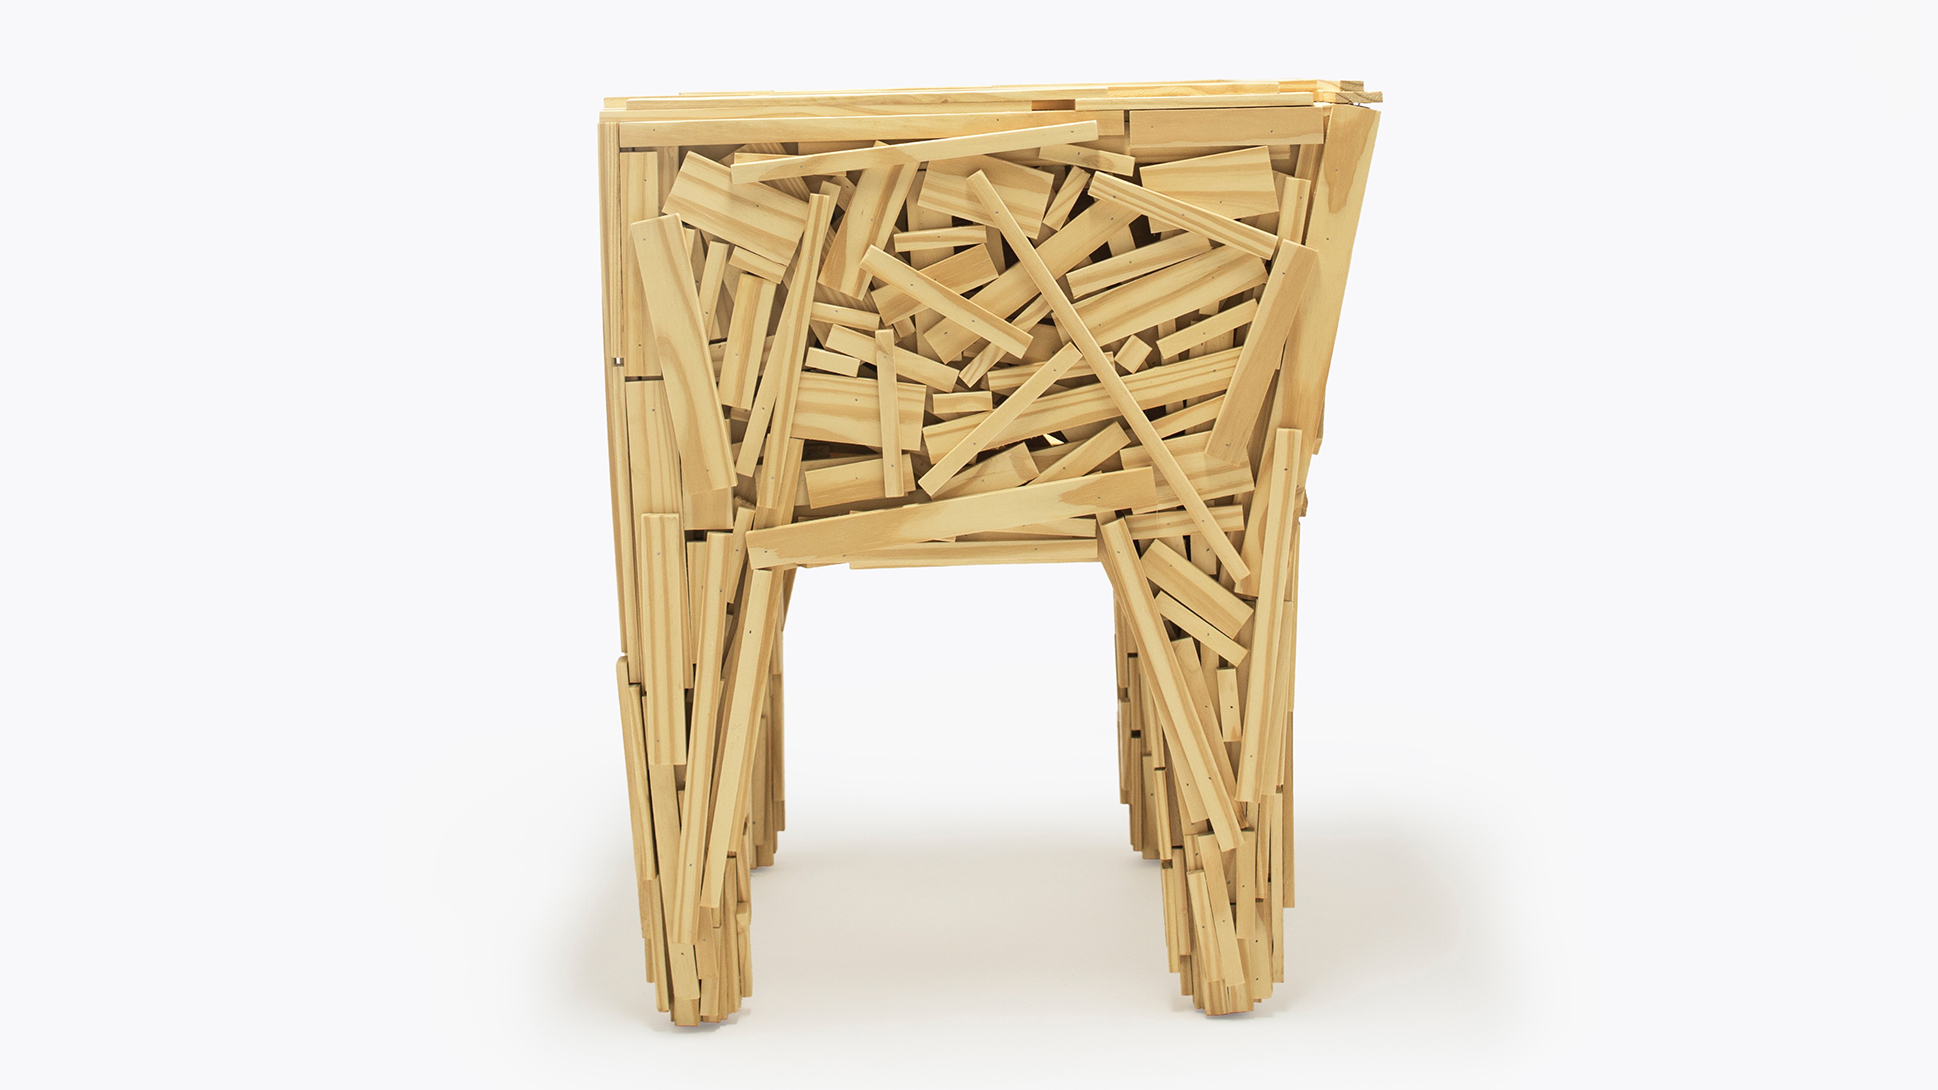 The Favela Chair designed by Fernando and Humberto Campana is one of the duo's most celebrated designs and can be found in private and public collections around the world, including the Metropolitan Museum of Art in New York and the NGV in Melbourne.